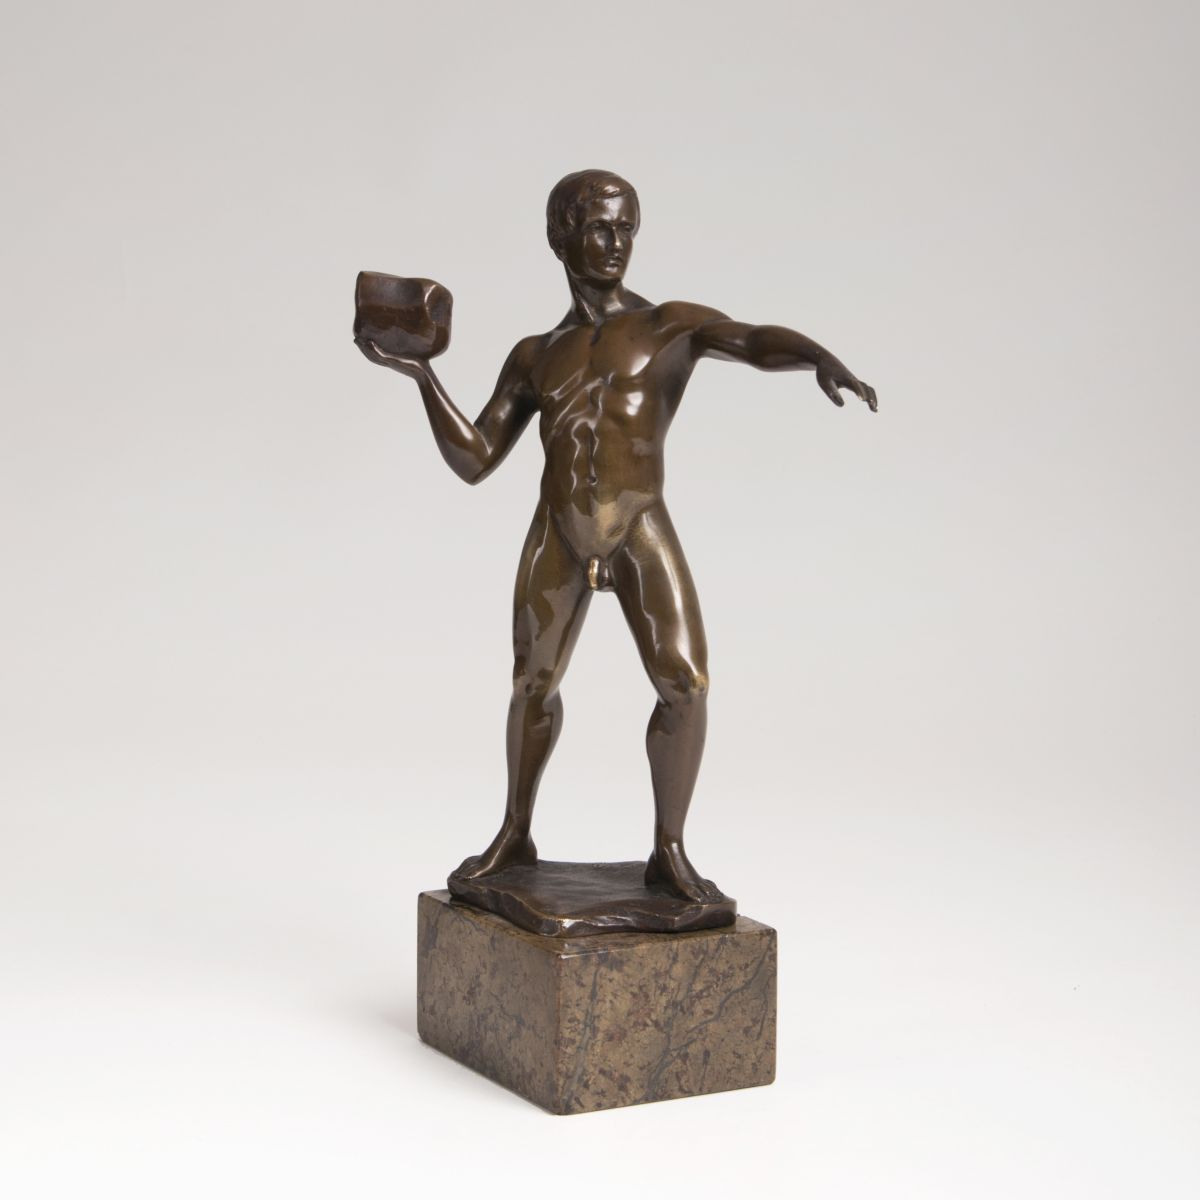 A bronze sculpture 'Thrower of stone'